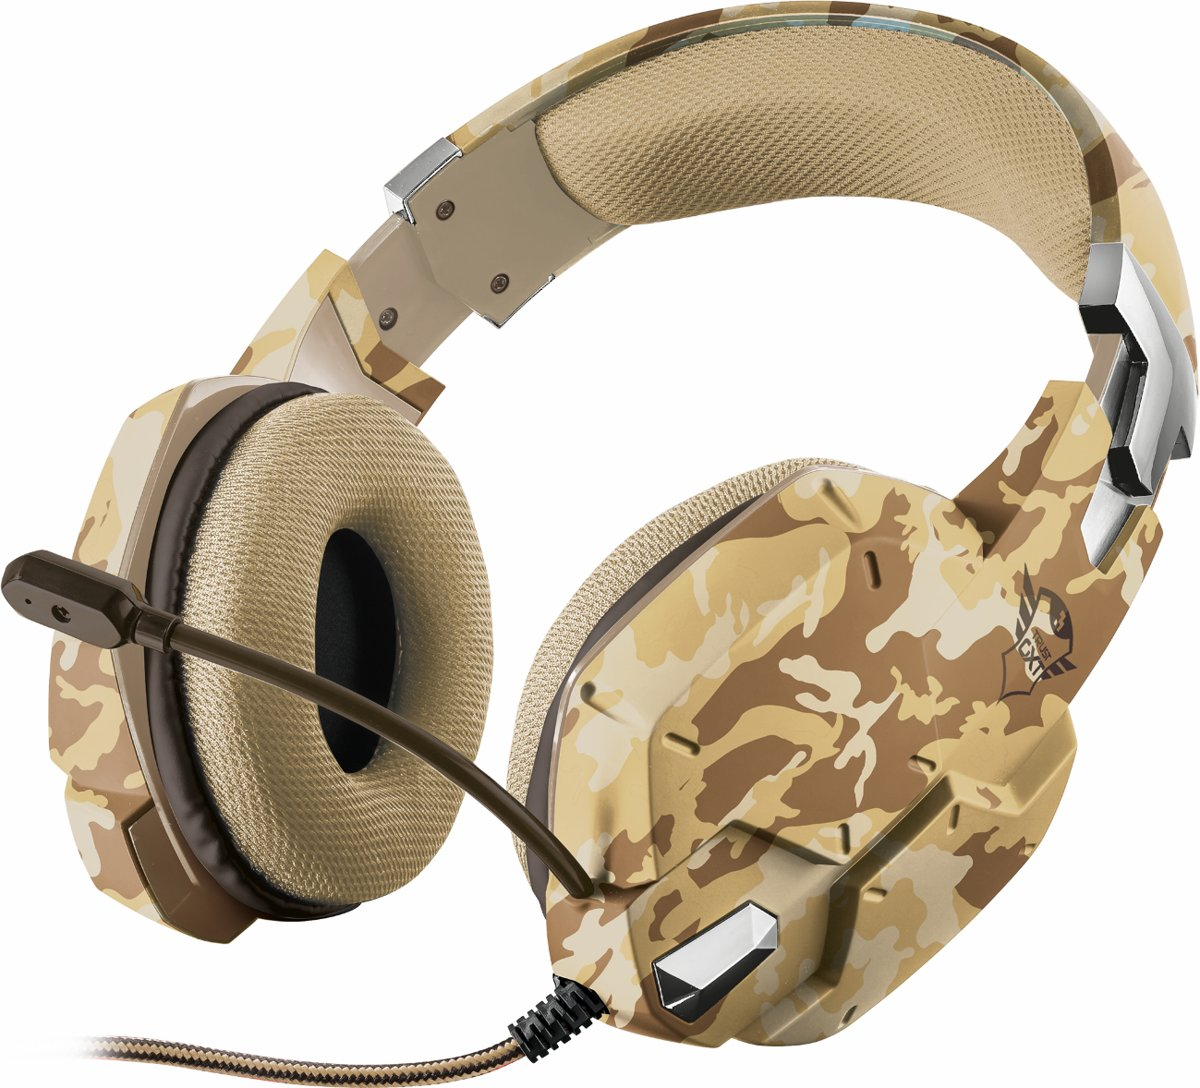 GXT 322 Carus - Dynamische Gaming Headset - Desert Camouflage